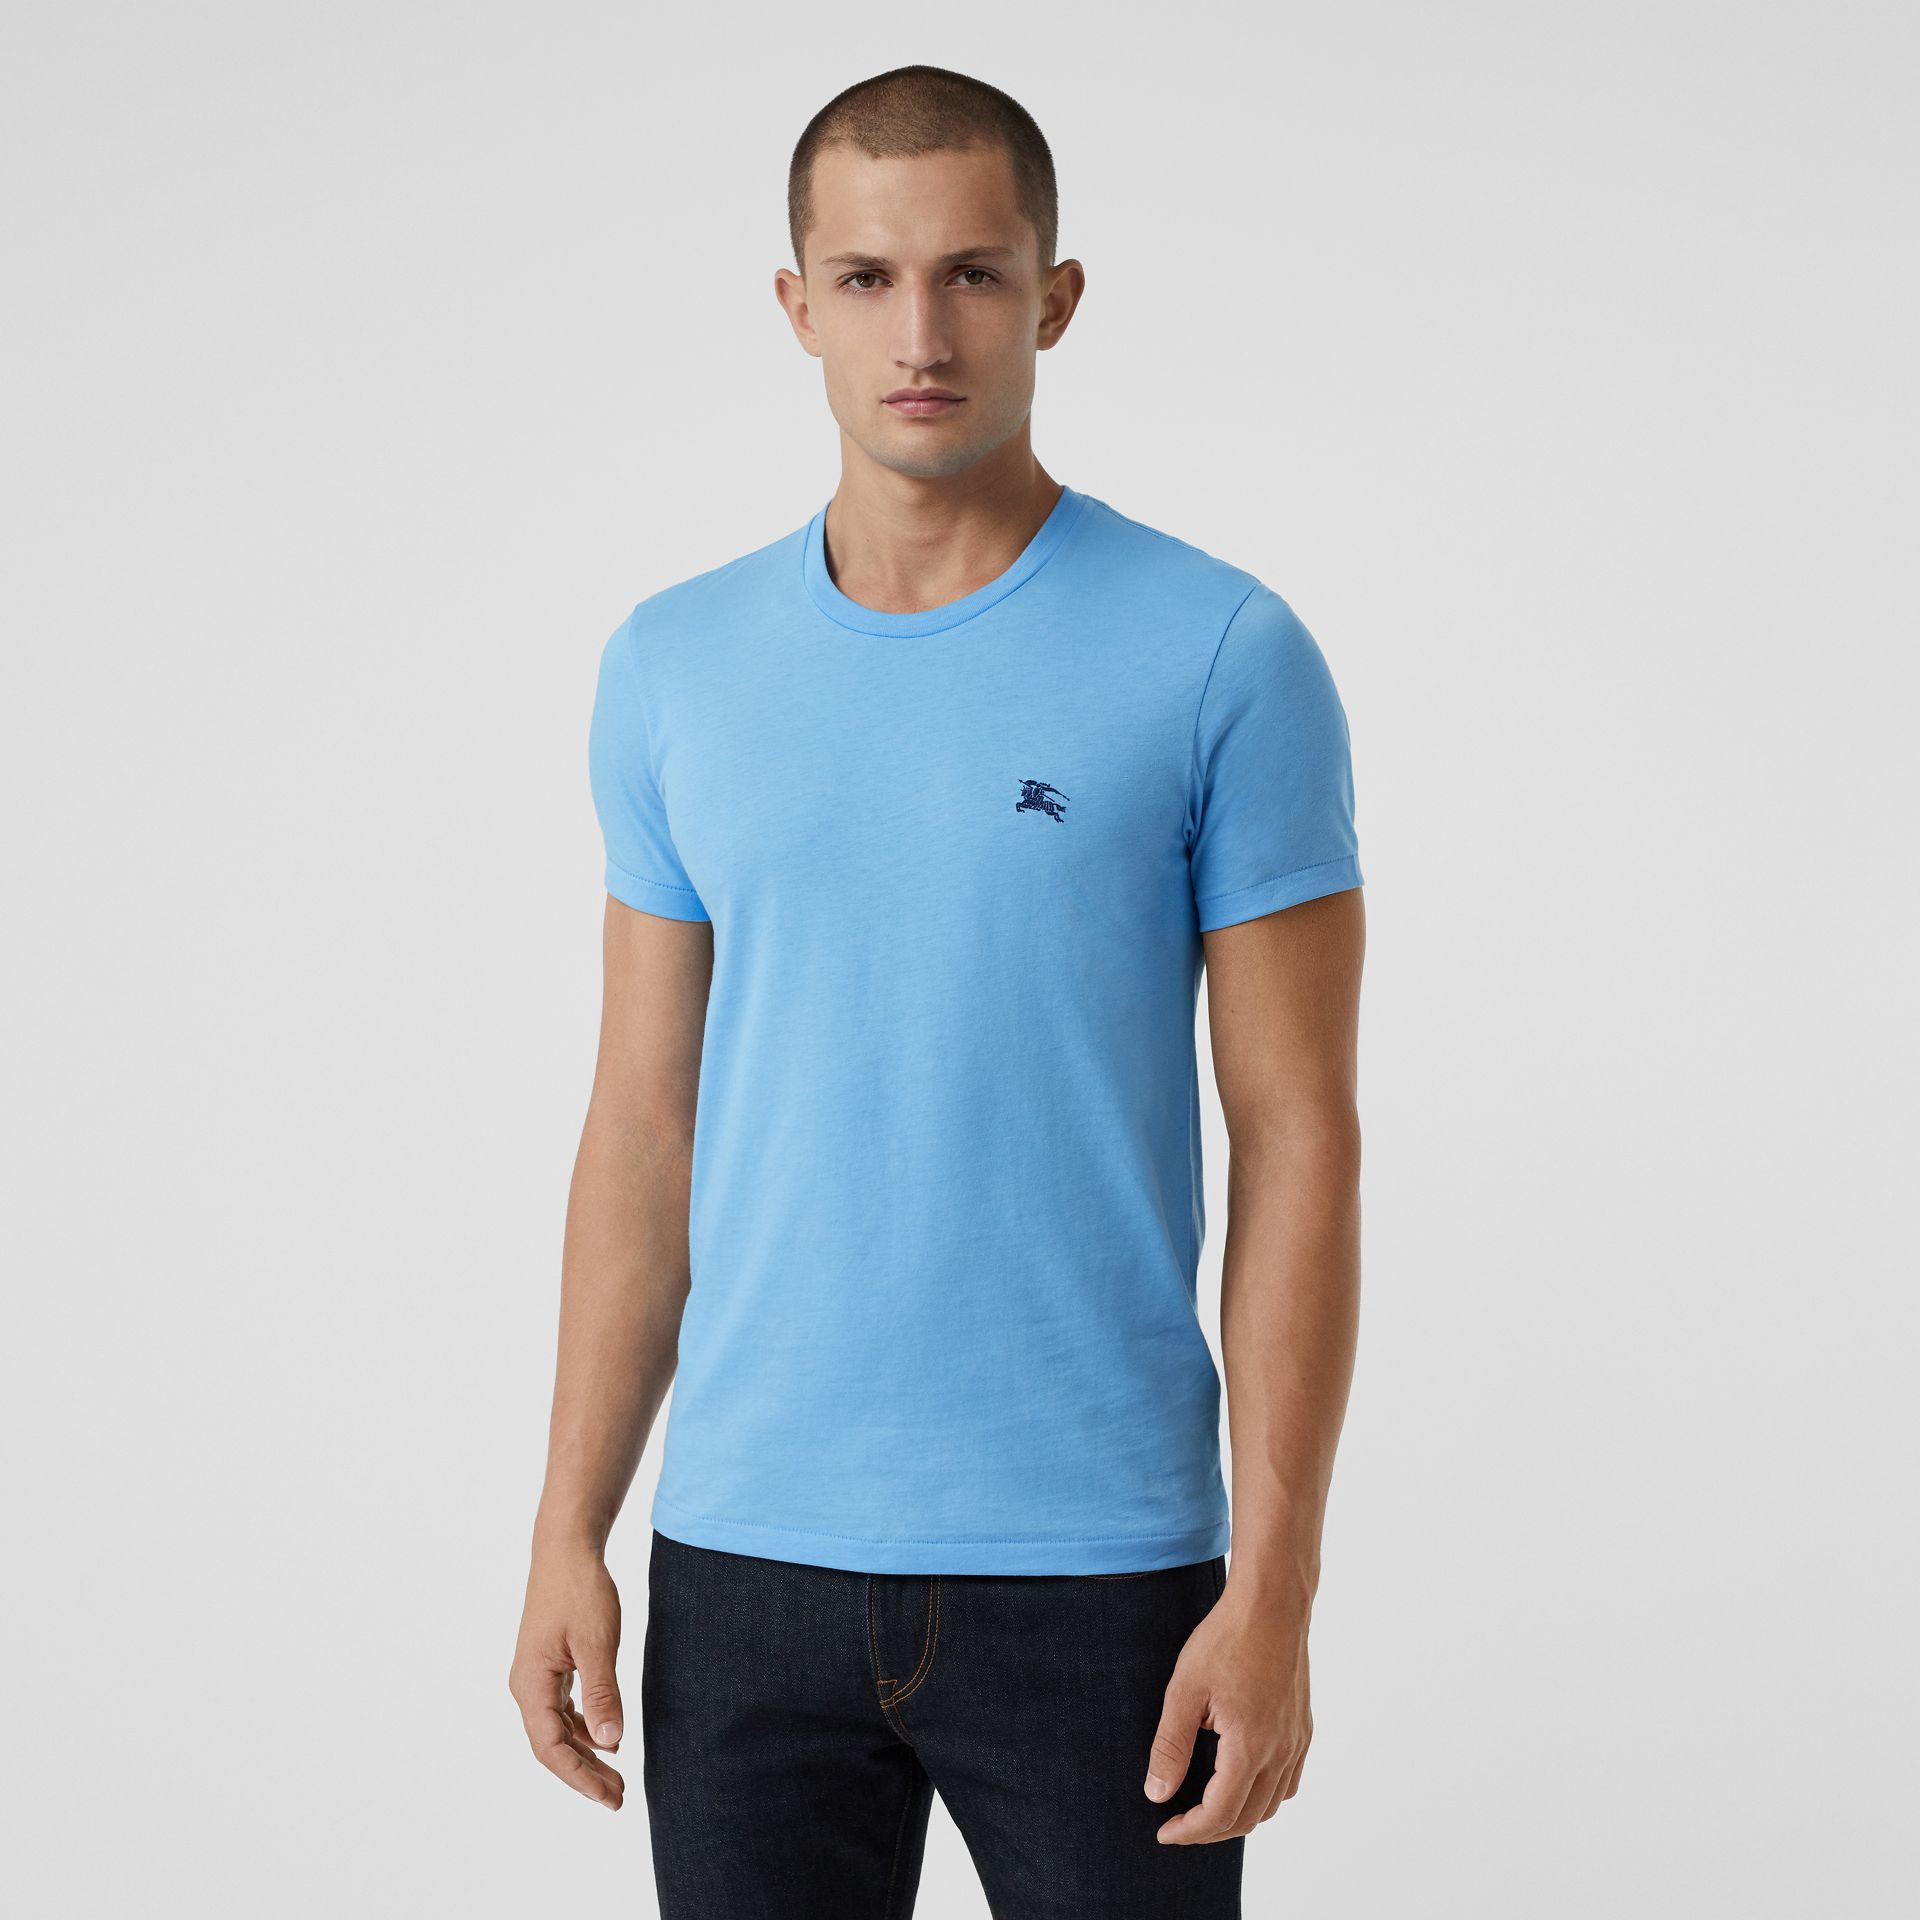 Cotton Jersey T-shirt in Blue Topaz - Men | Burberry - gallery image 0